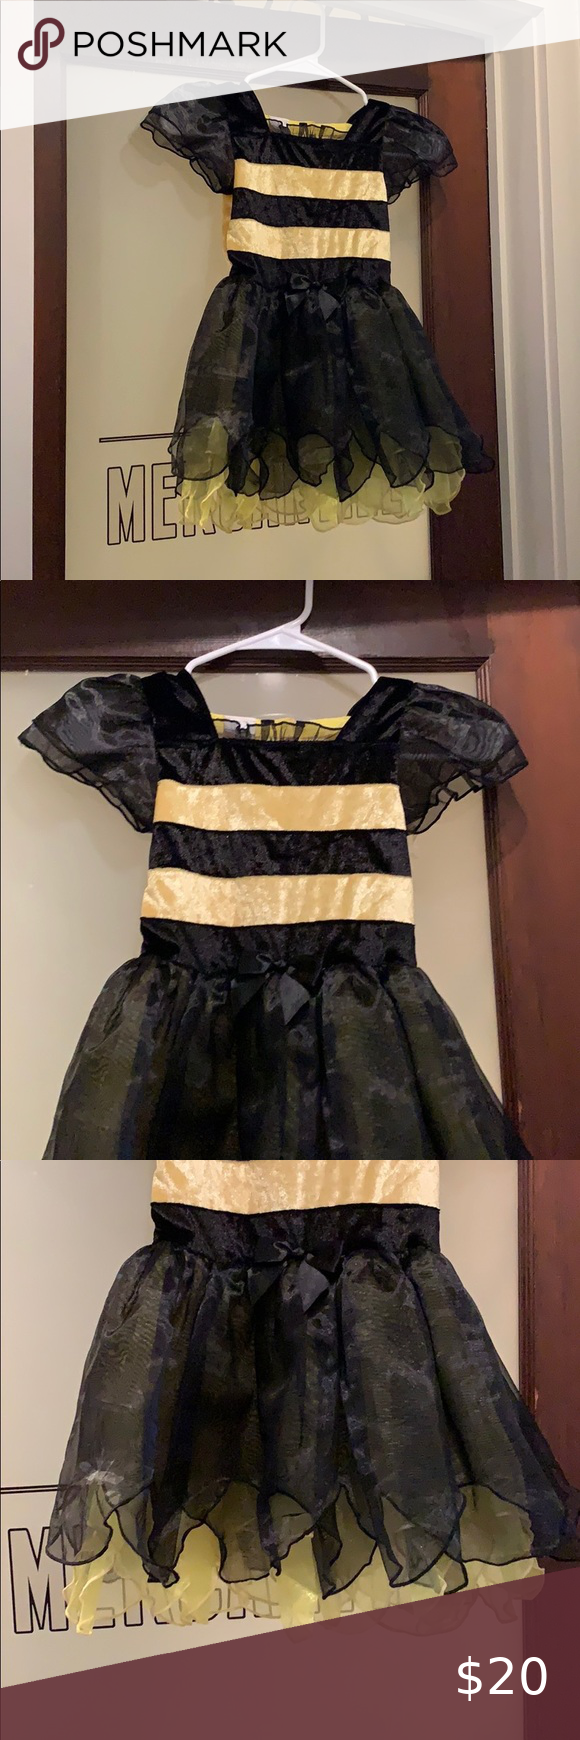 Halloween Bumble Bee Dress 4t 5t Pre Owned Halloween Bumble Bee Dress 4t 5t Pre Owned Koala Kids Costumes Halloween Bumble Bee Dress Bee Dress 4t Dress [ 1740 x 580 Pixel ]